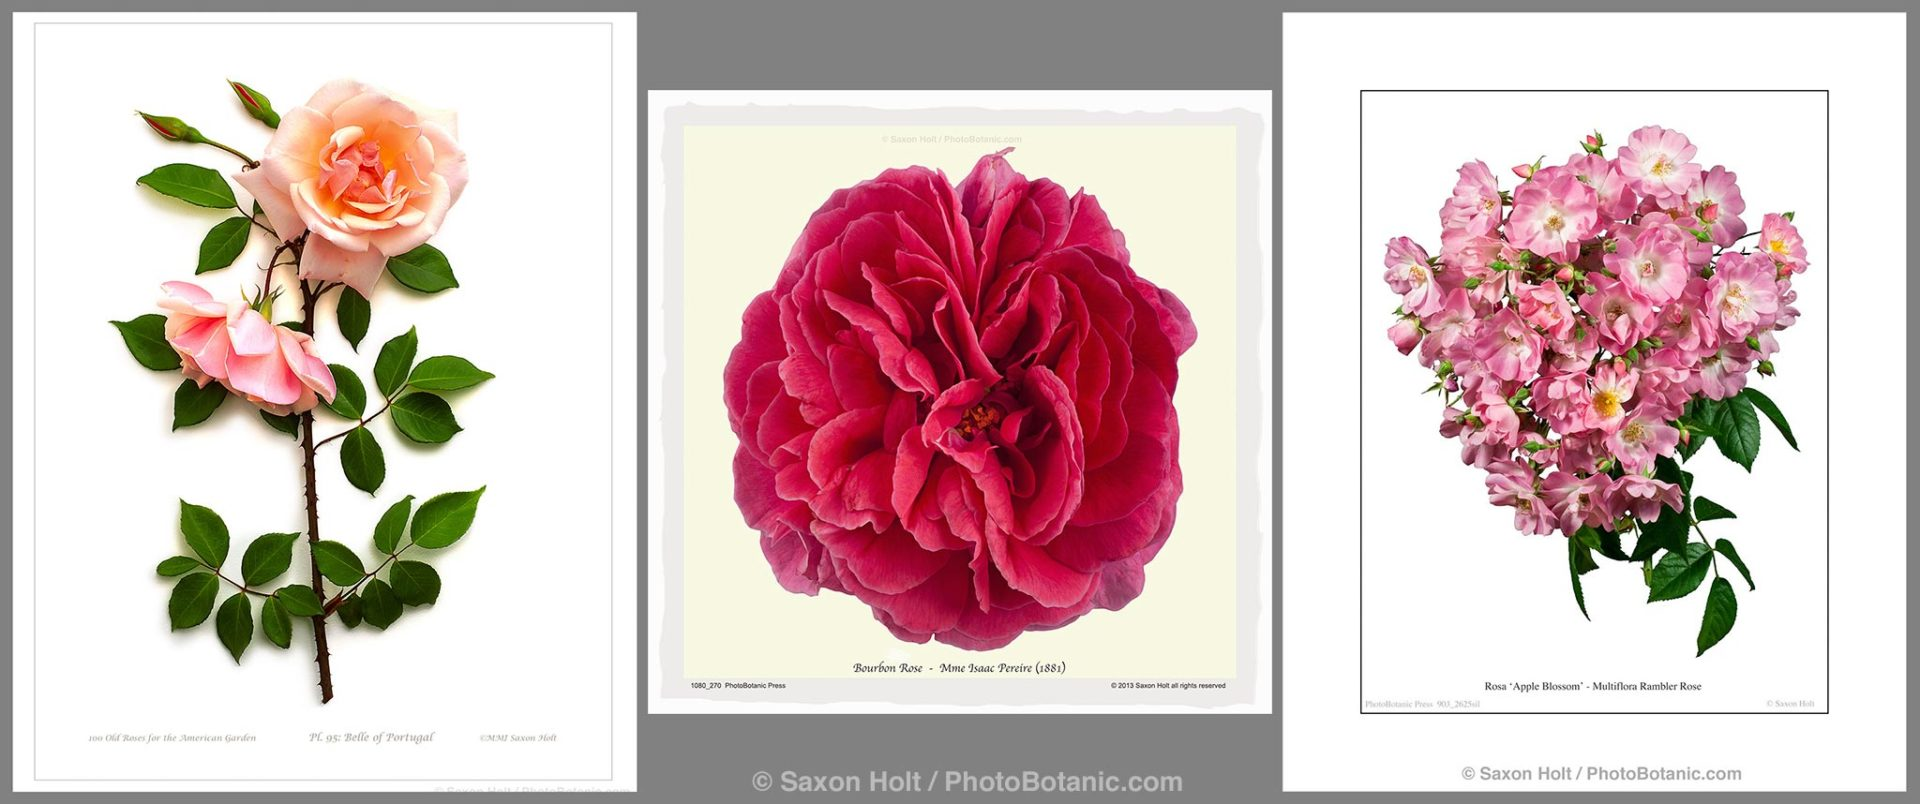 3 Roses as Photobotanic Illustrations - 'Belle of Portugal' 'Mme Isaac Pereire'; 'Apple Blossom'